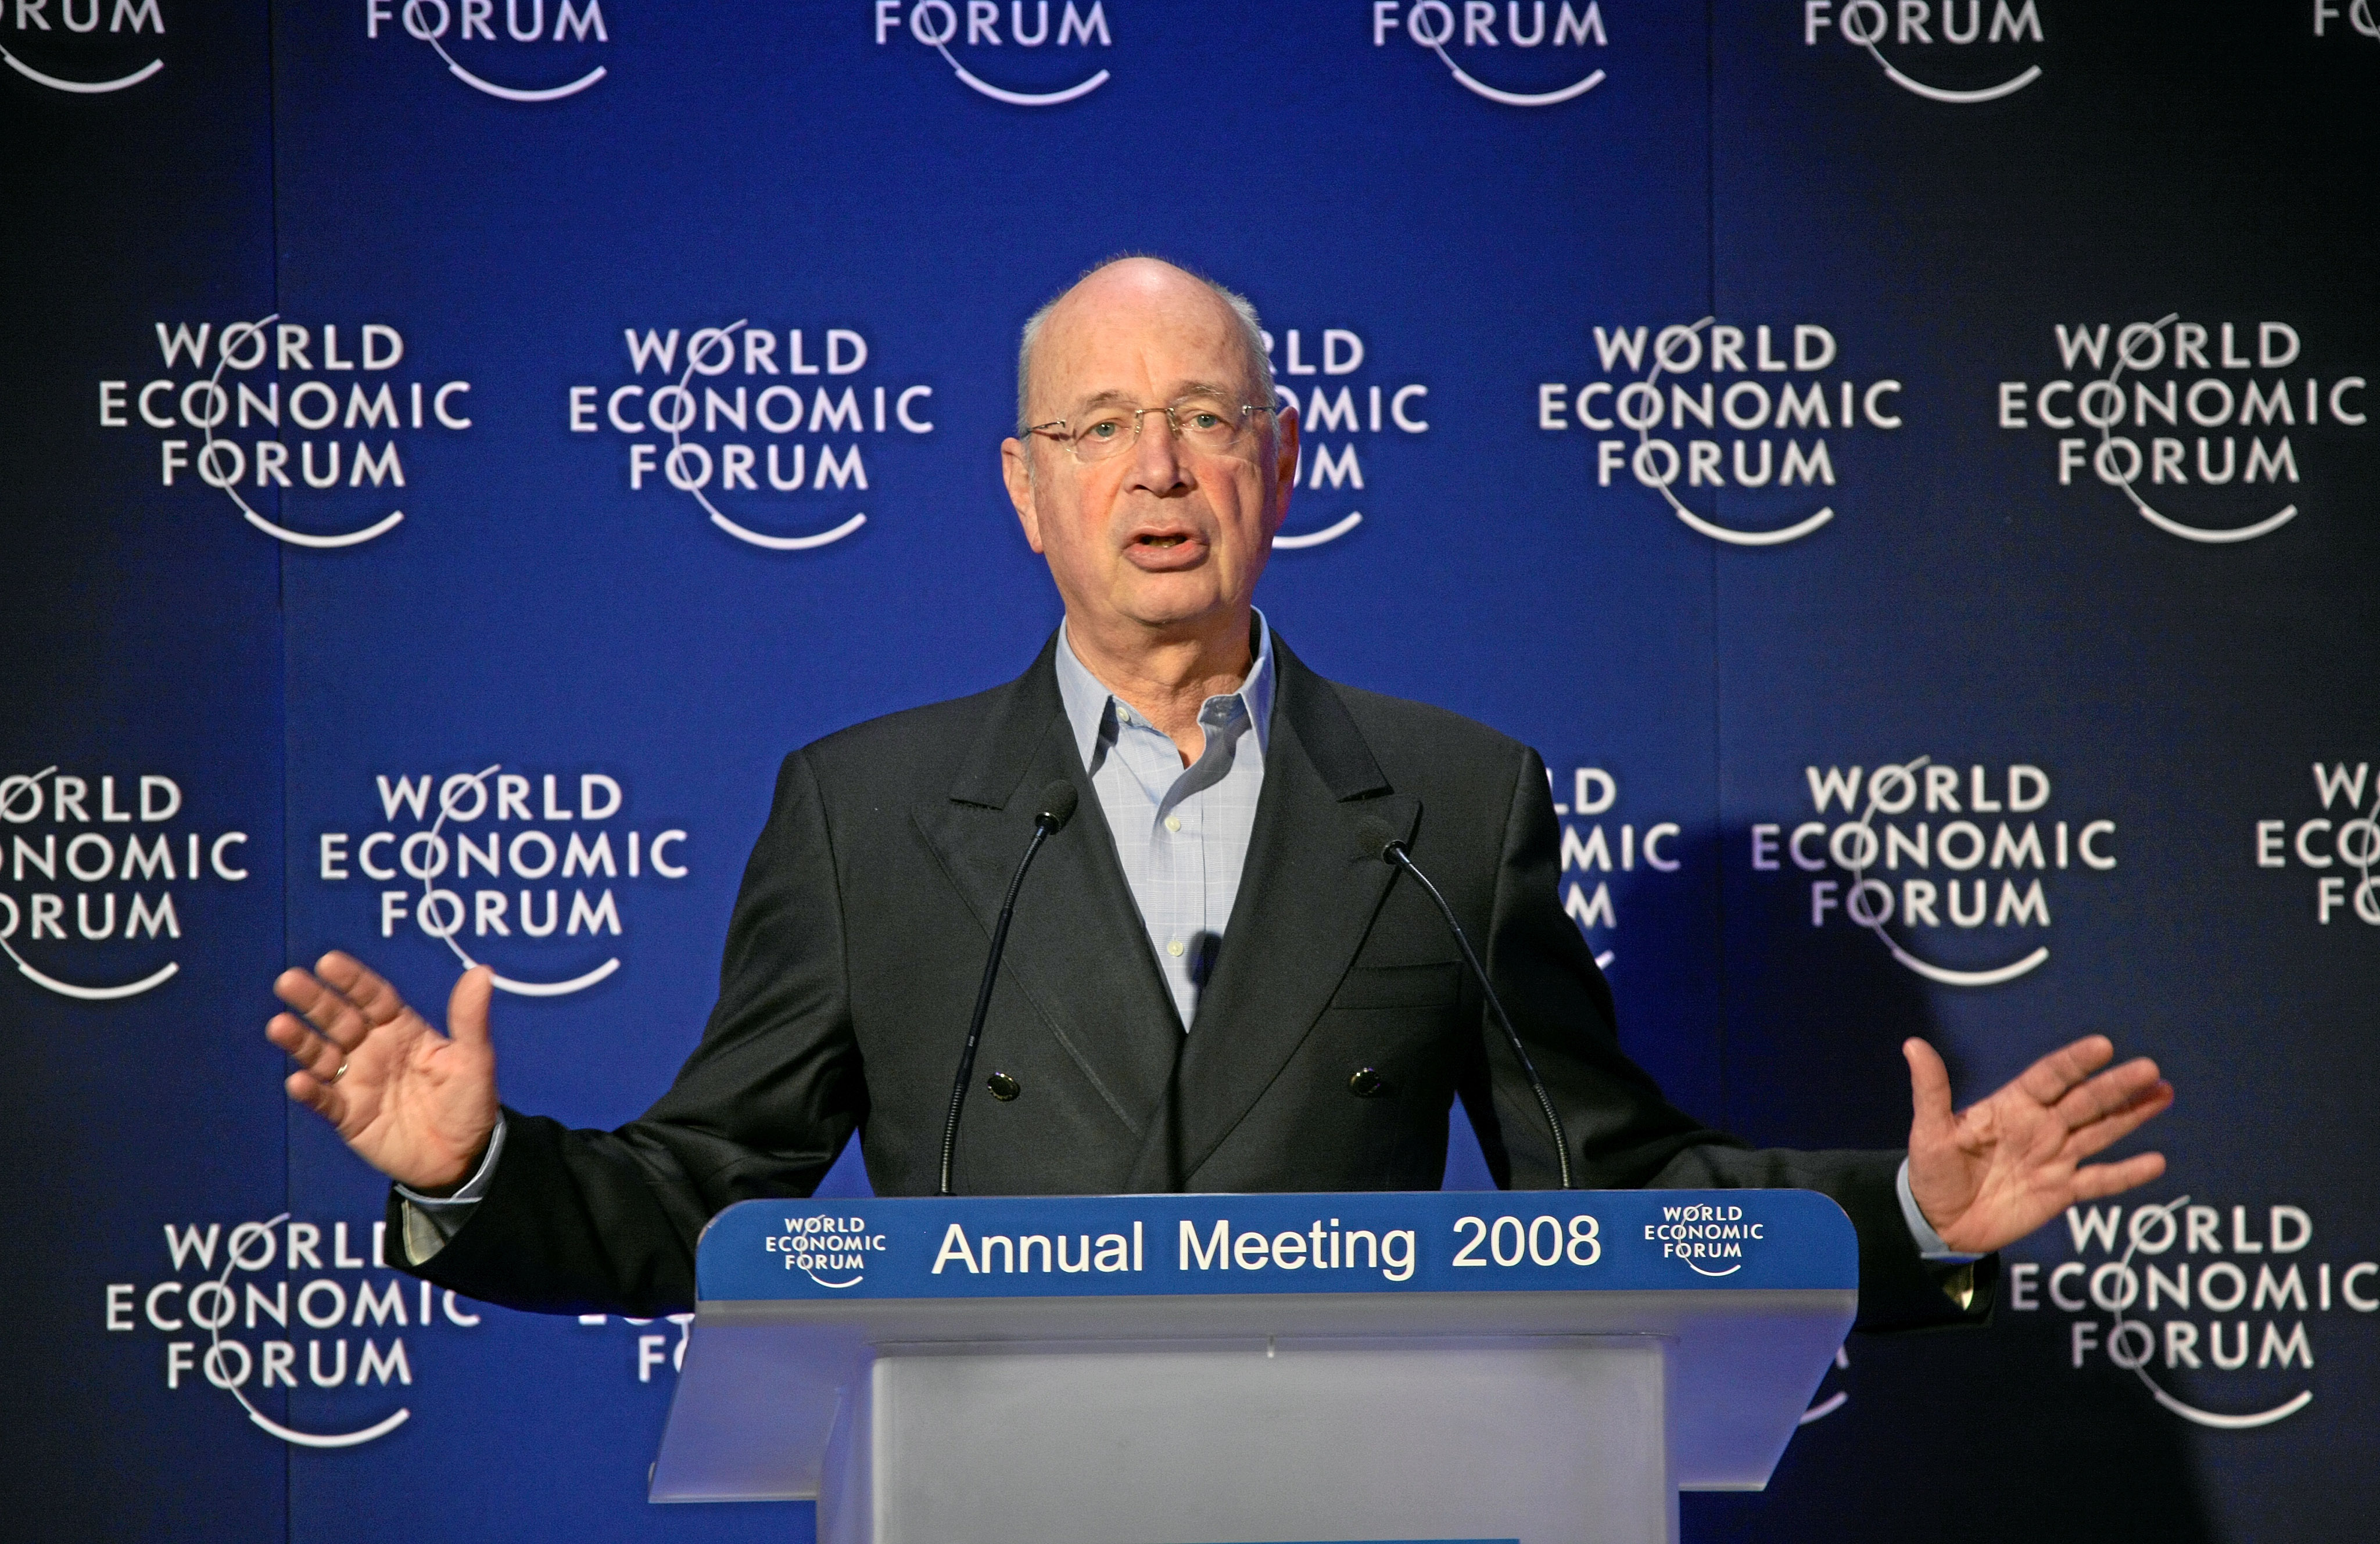 'Message from Davos: Believing in the Future': Klaus Schwab